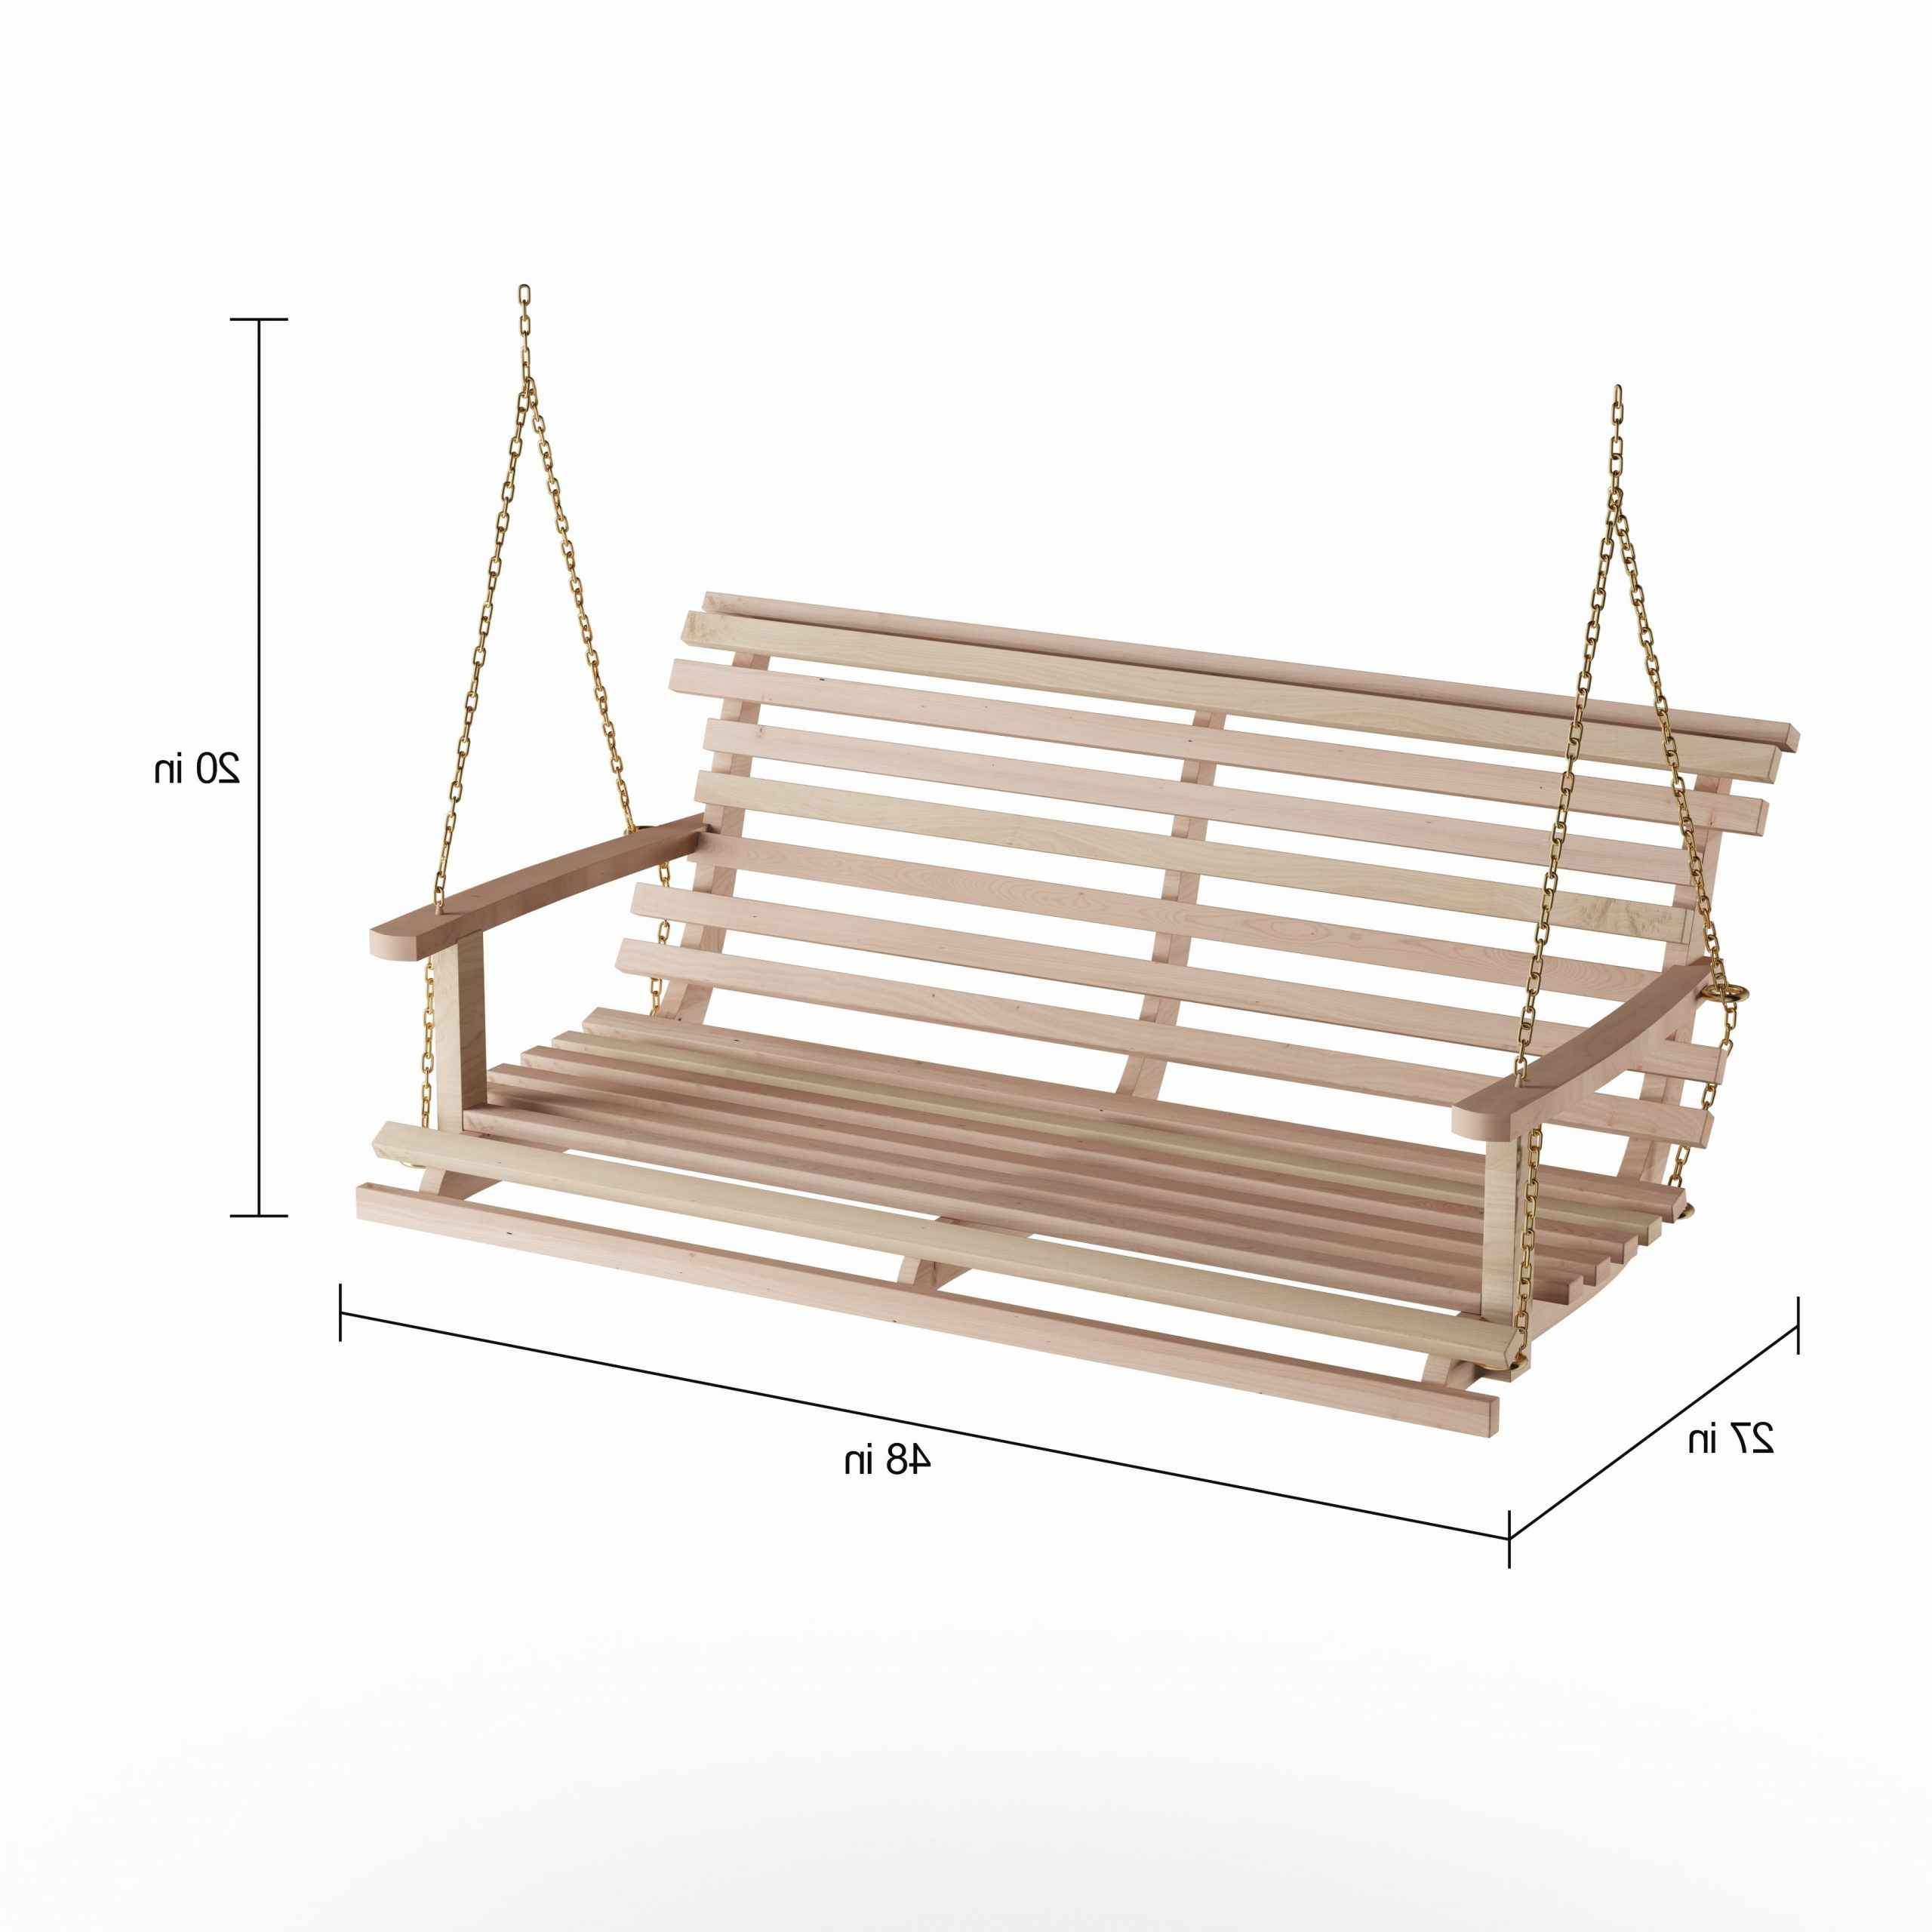 Popular Havenside Home Goodwin Acasia Wood Bench Swing With Chain Intended For Porch Swings With Chain (View 7 of 26)